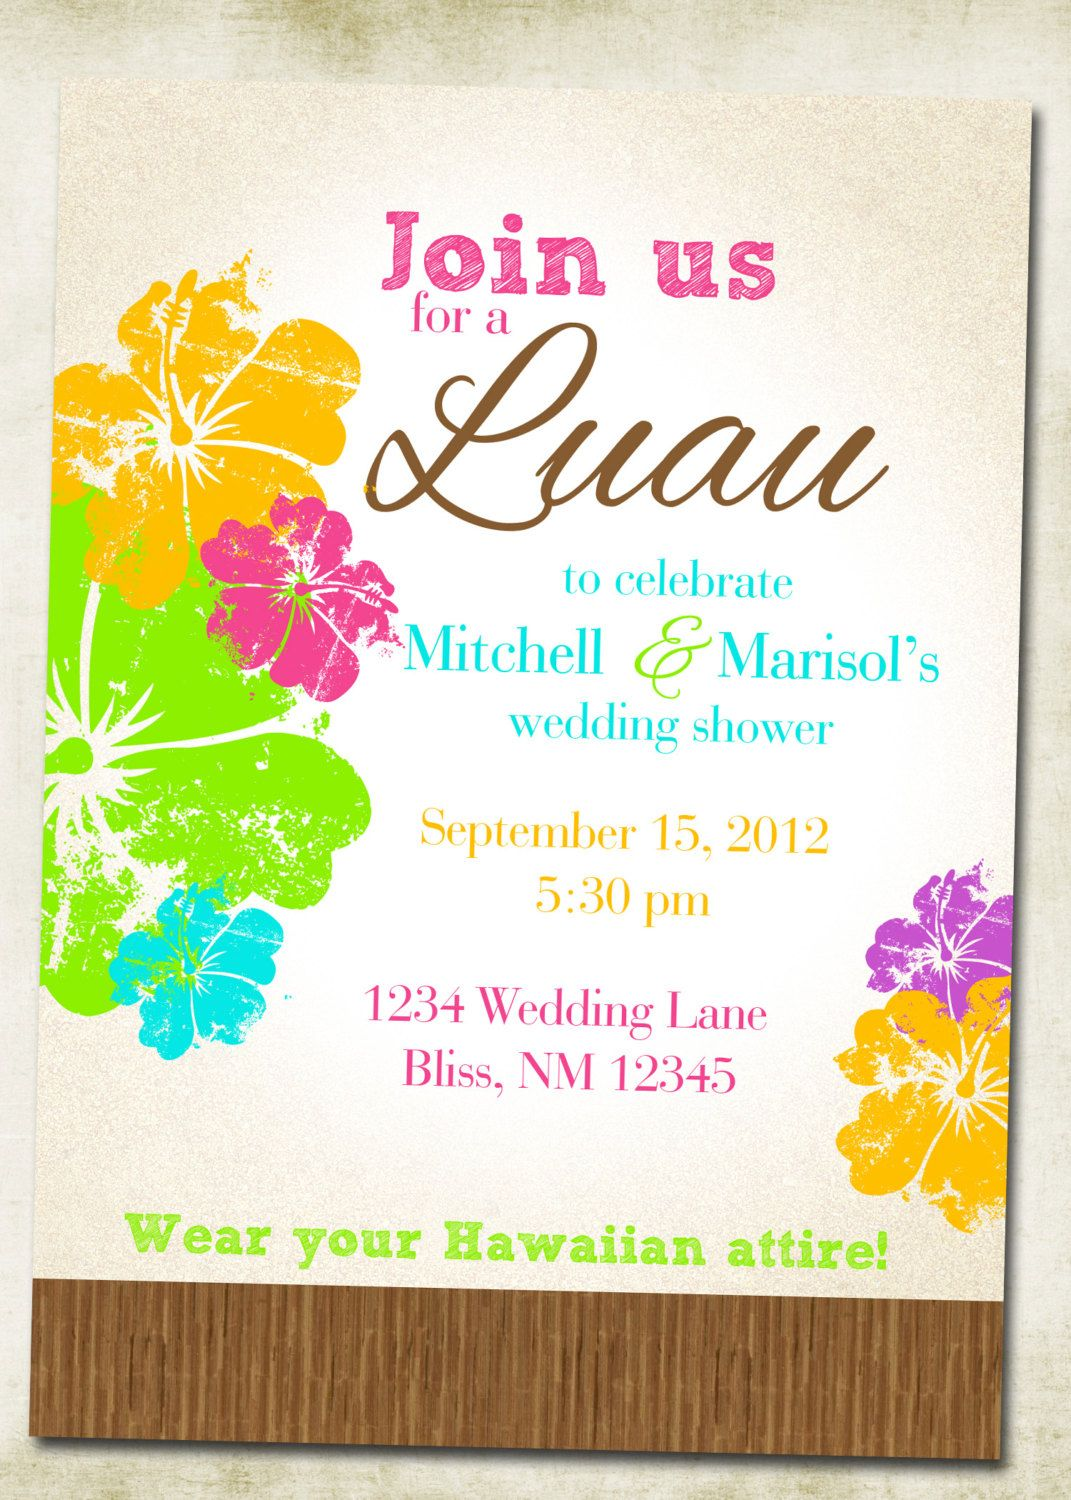 Wedding Shower Invitations Etsy as beautiful invitations design